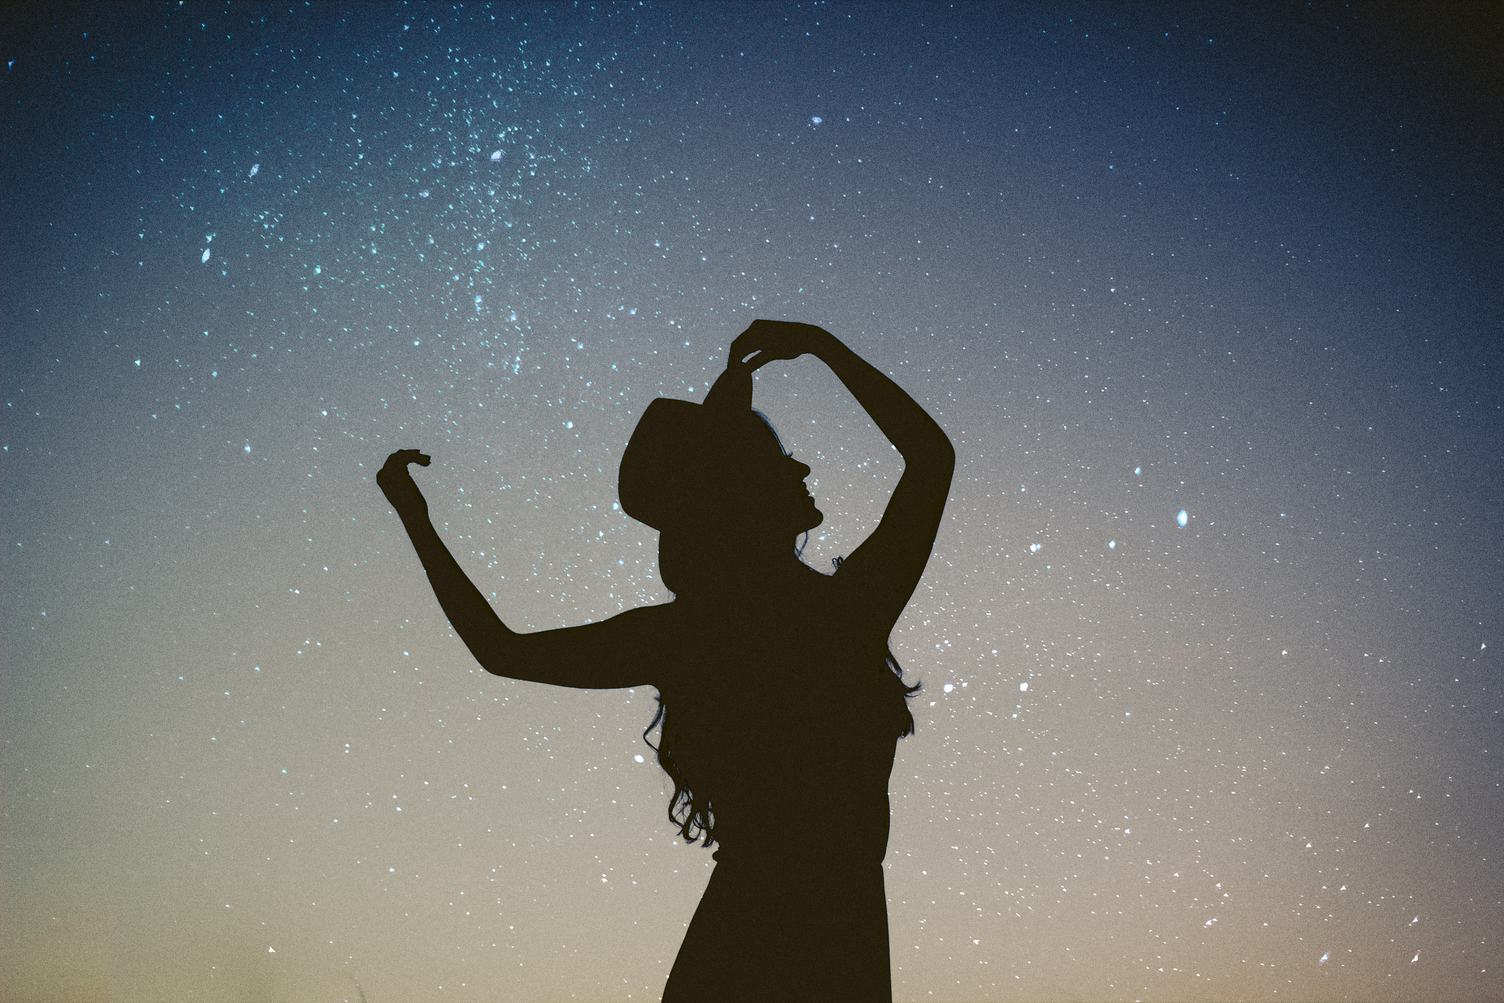 Silhouette of a Woman Standing Outside, Starry Night Background